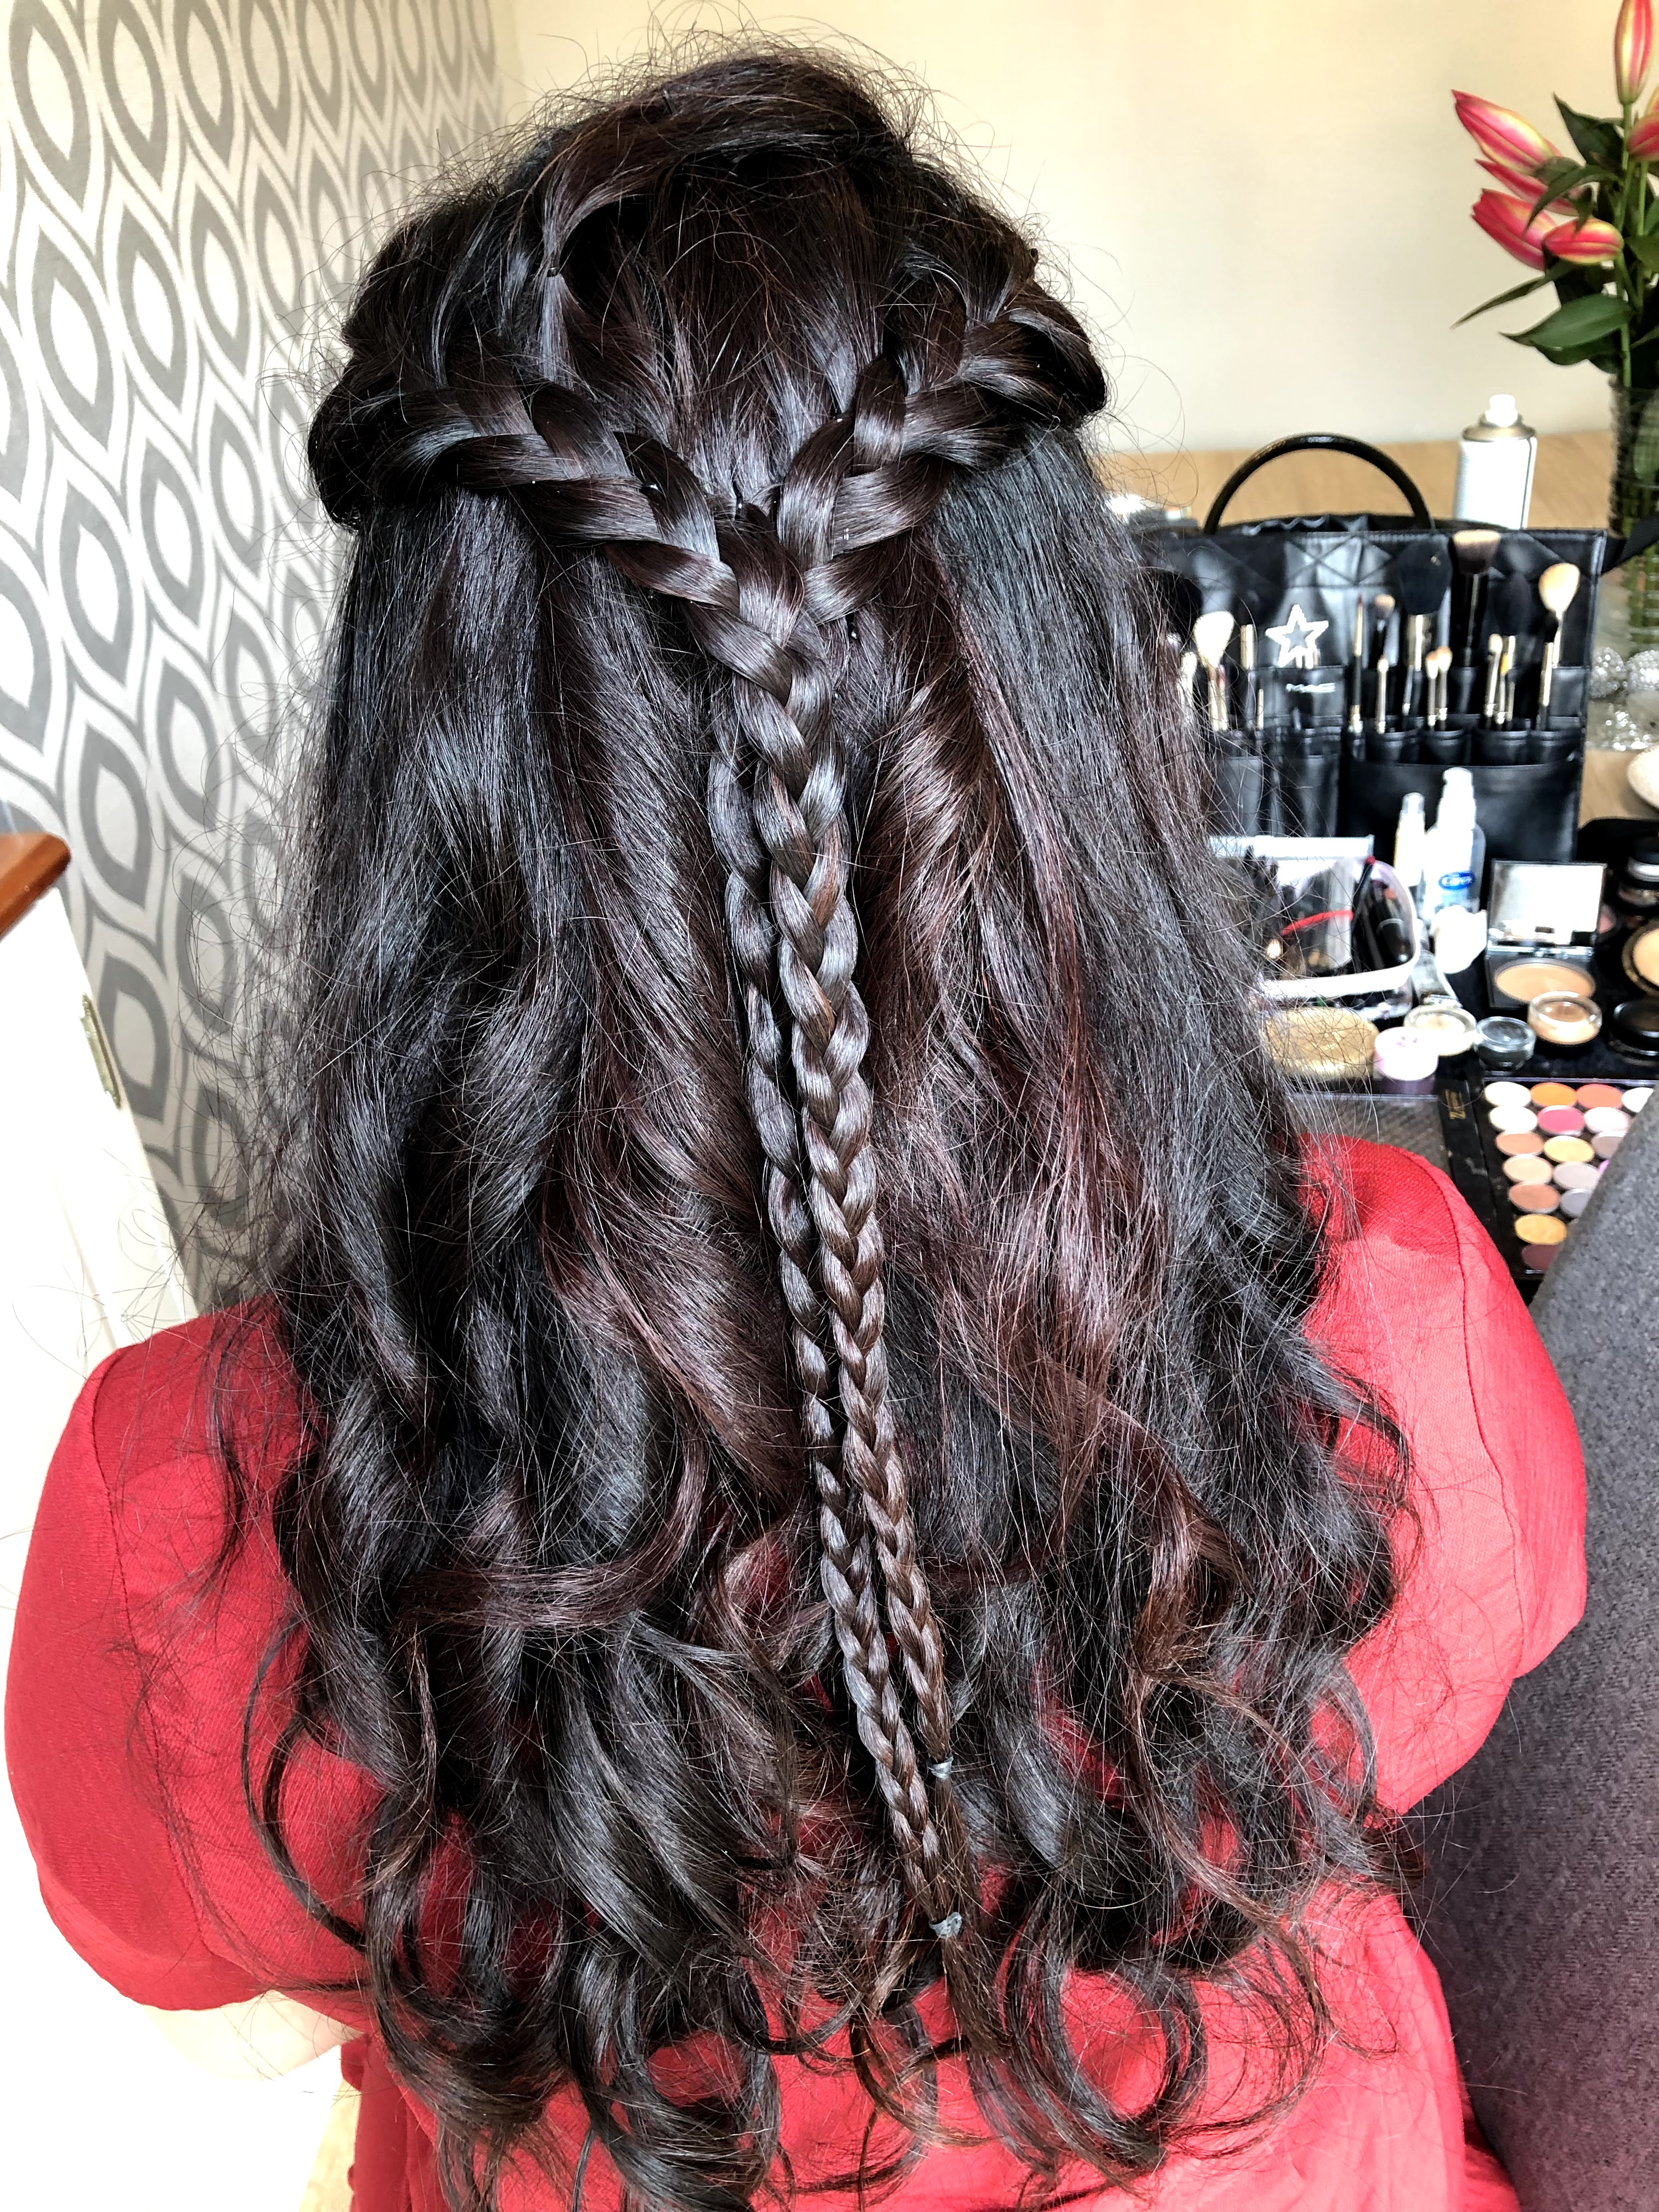 Plaited hairstyle